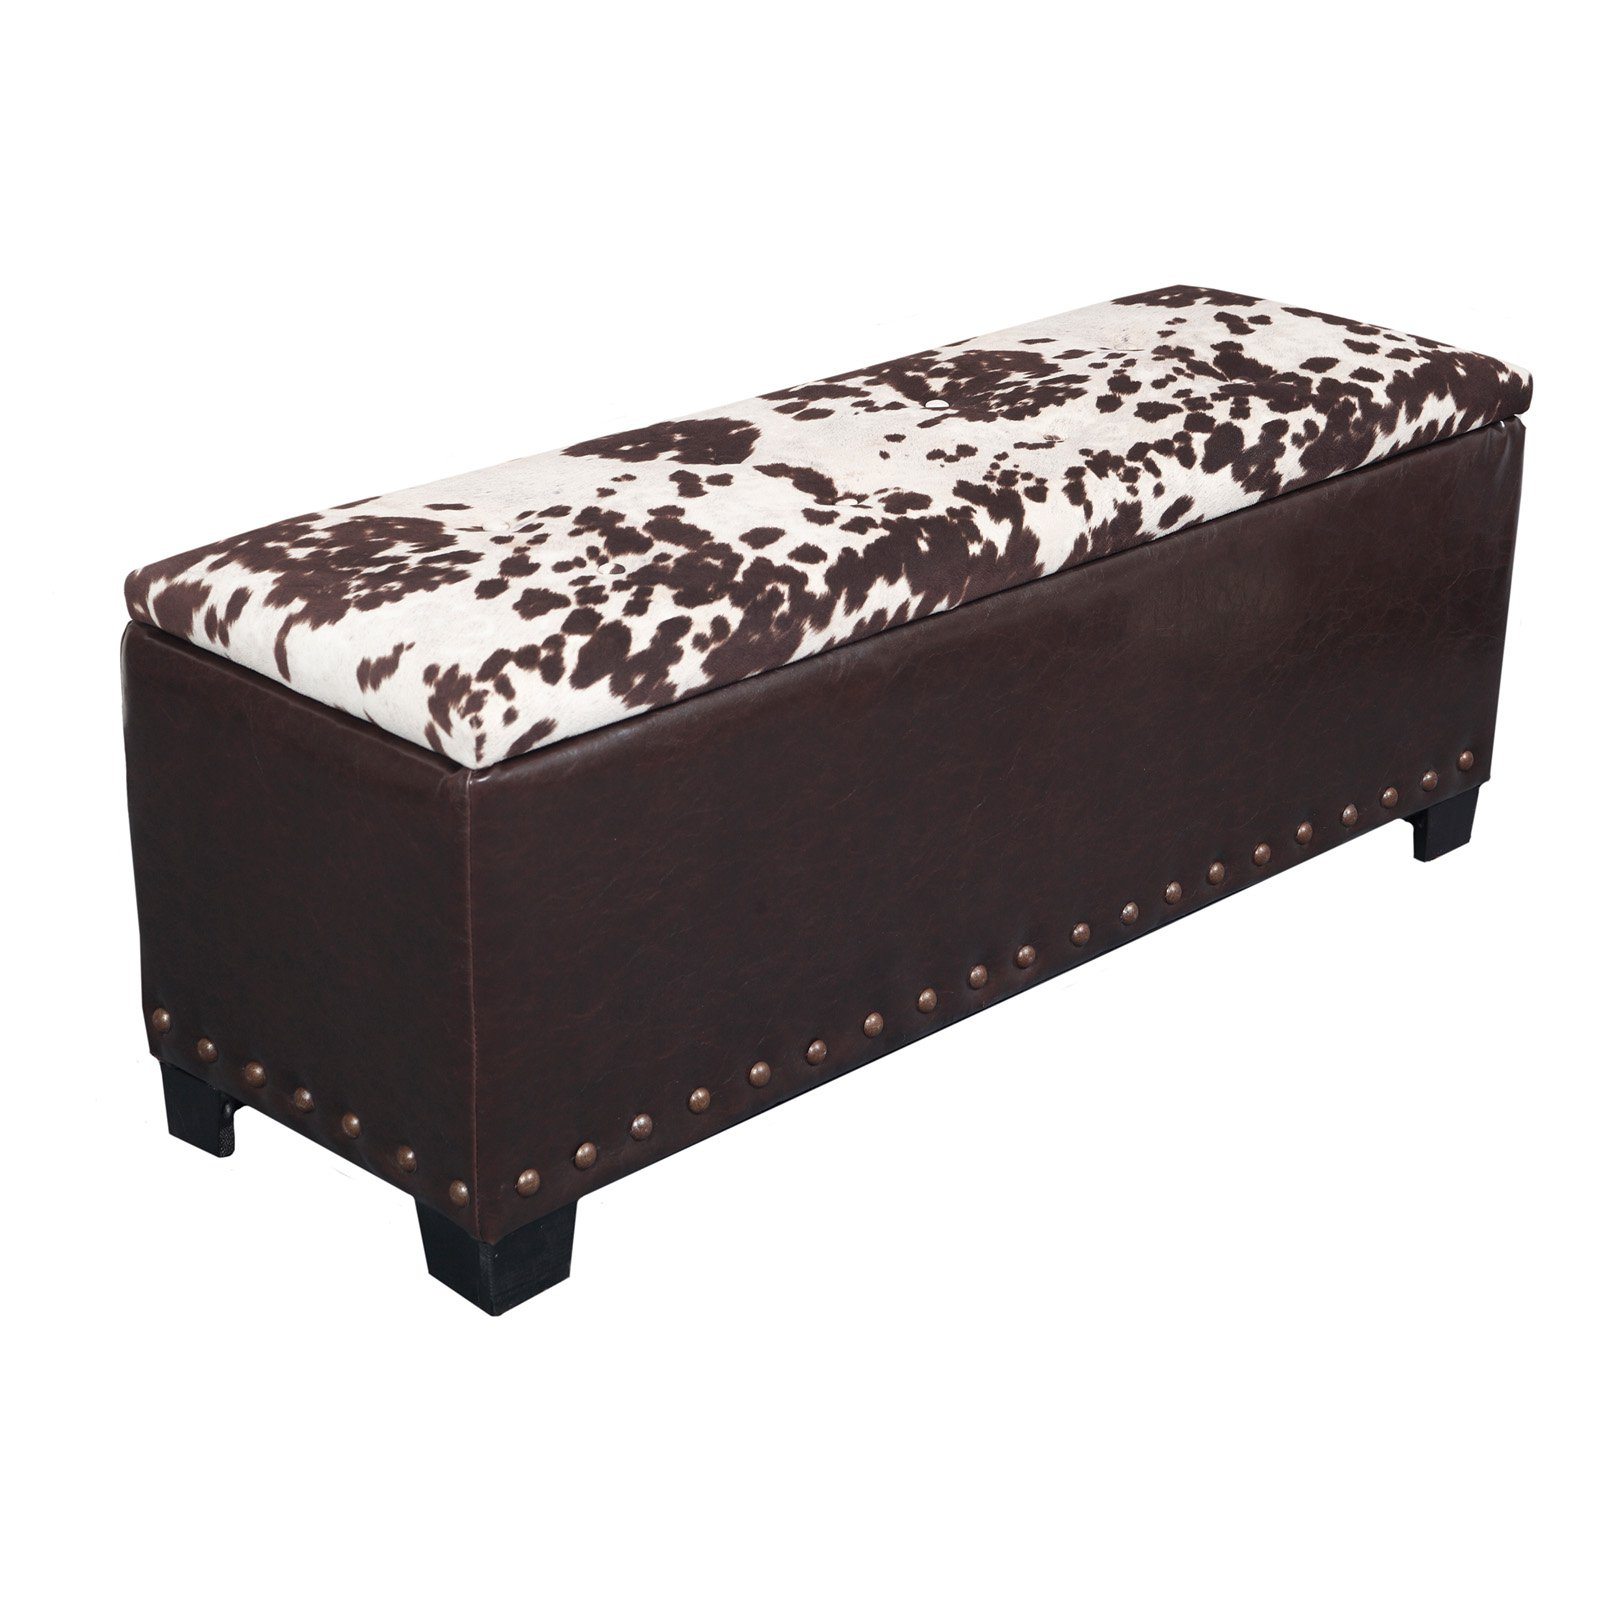 Cowhide Gun Concealment Bench, Dark Brown/Cowhide